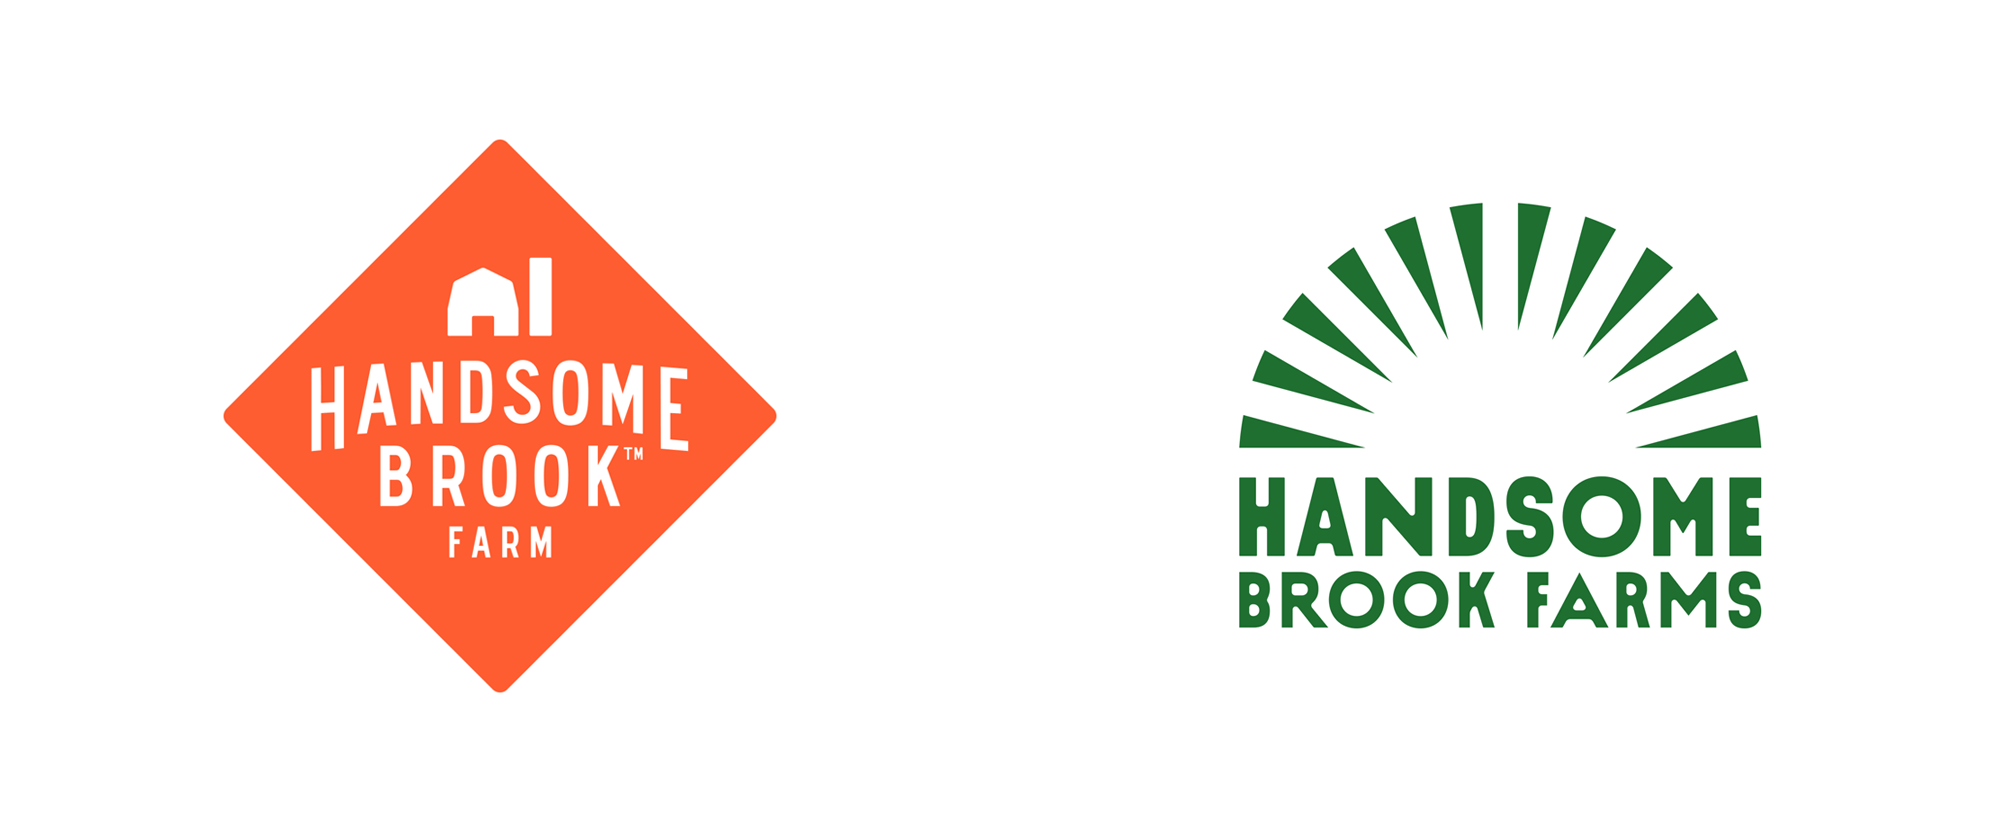 New Logo and Identity for Handsome Brook Farms by Redscout